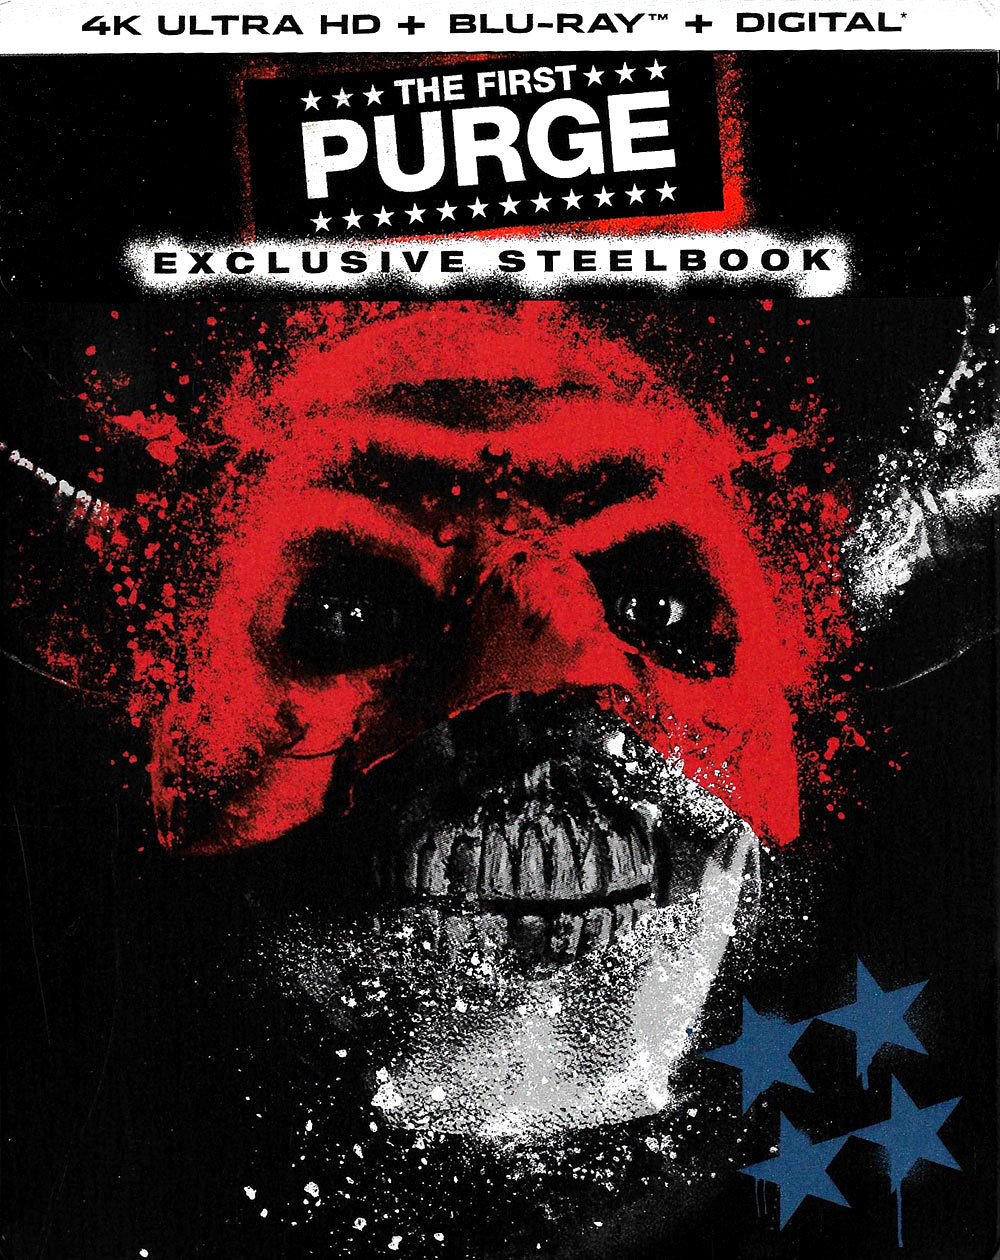 The First Purge 4K (SteelBook)(2018) Ultra HD Blu-ray